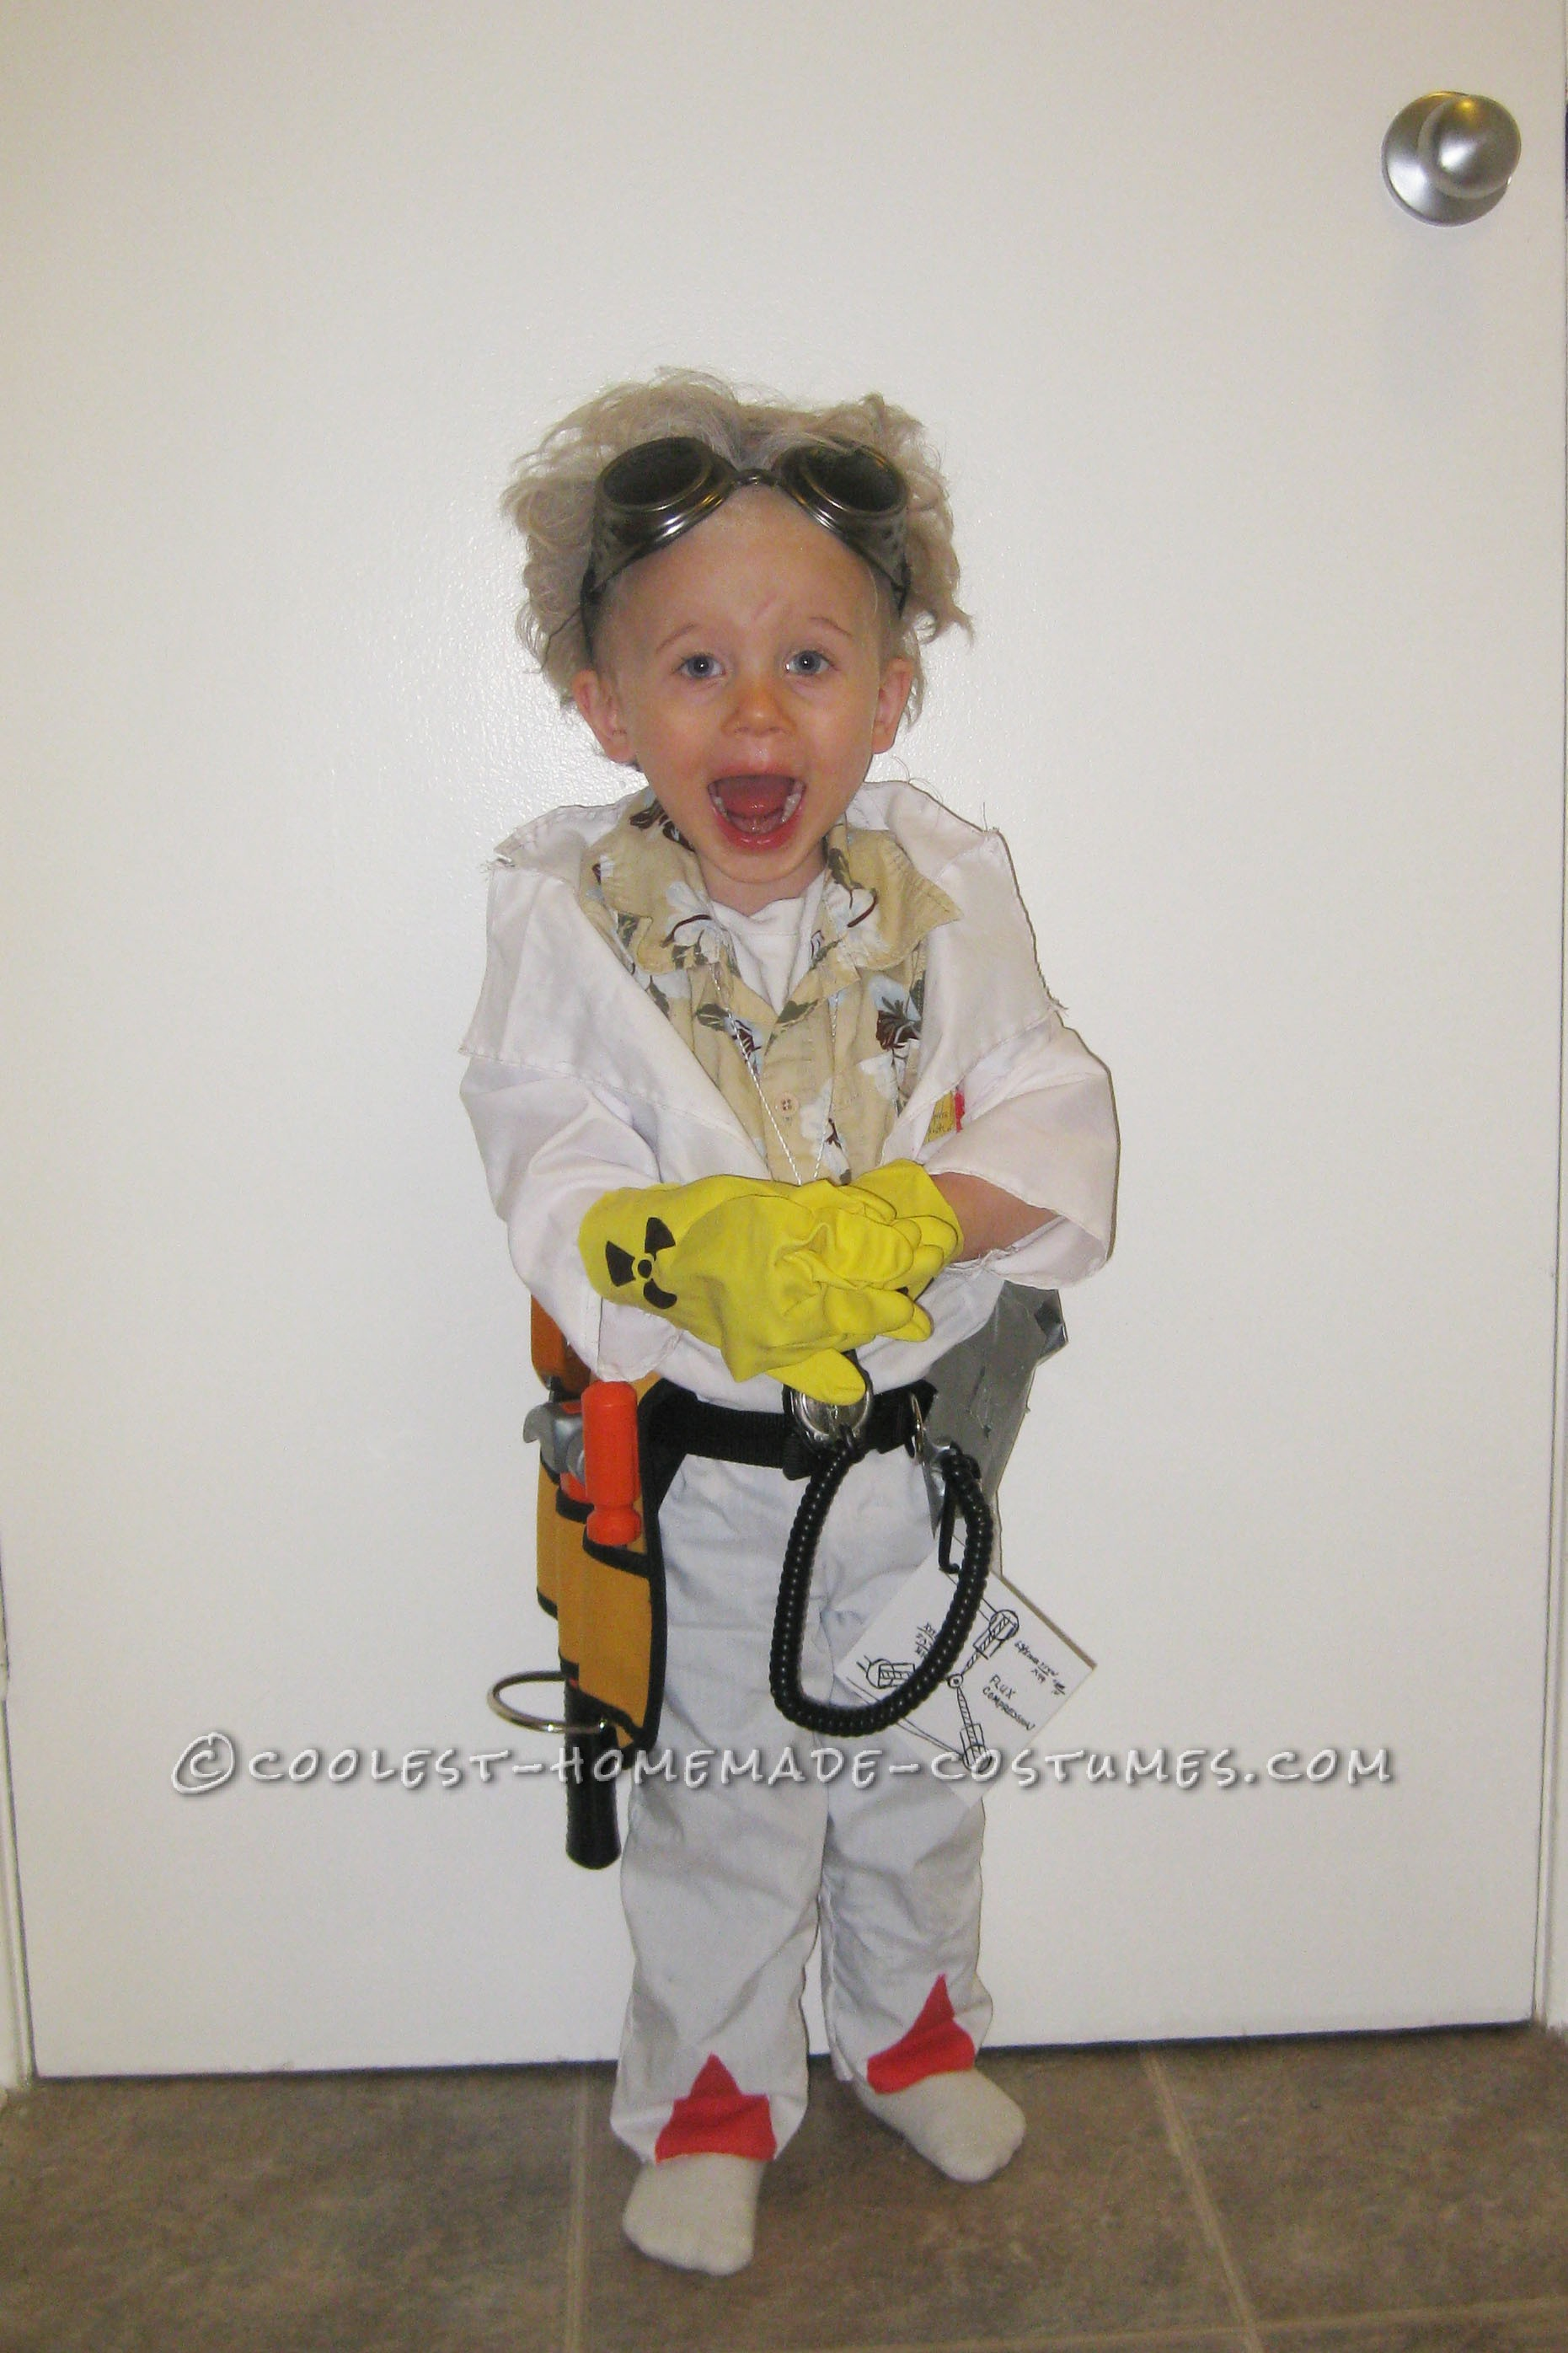 great scott! what a costume! it's 2-year old doc brown from back to